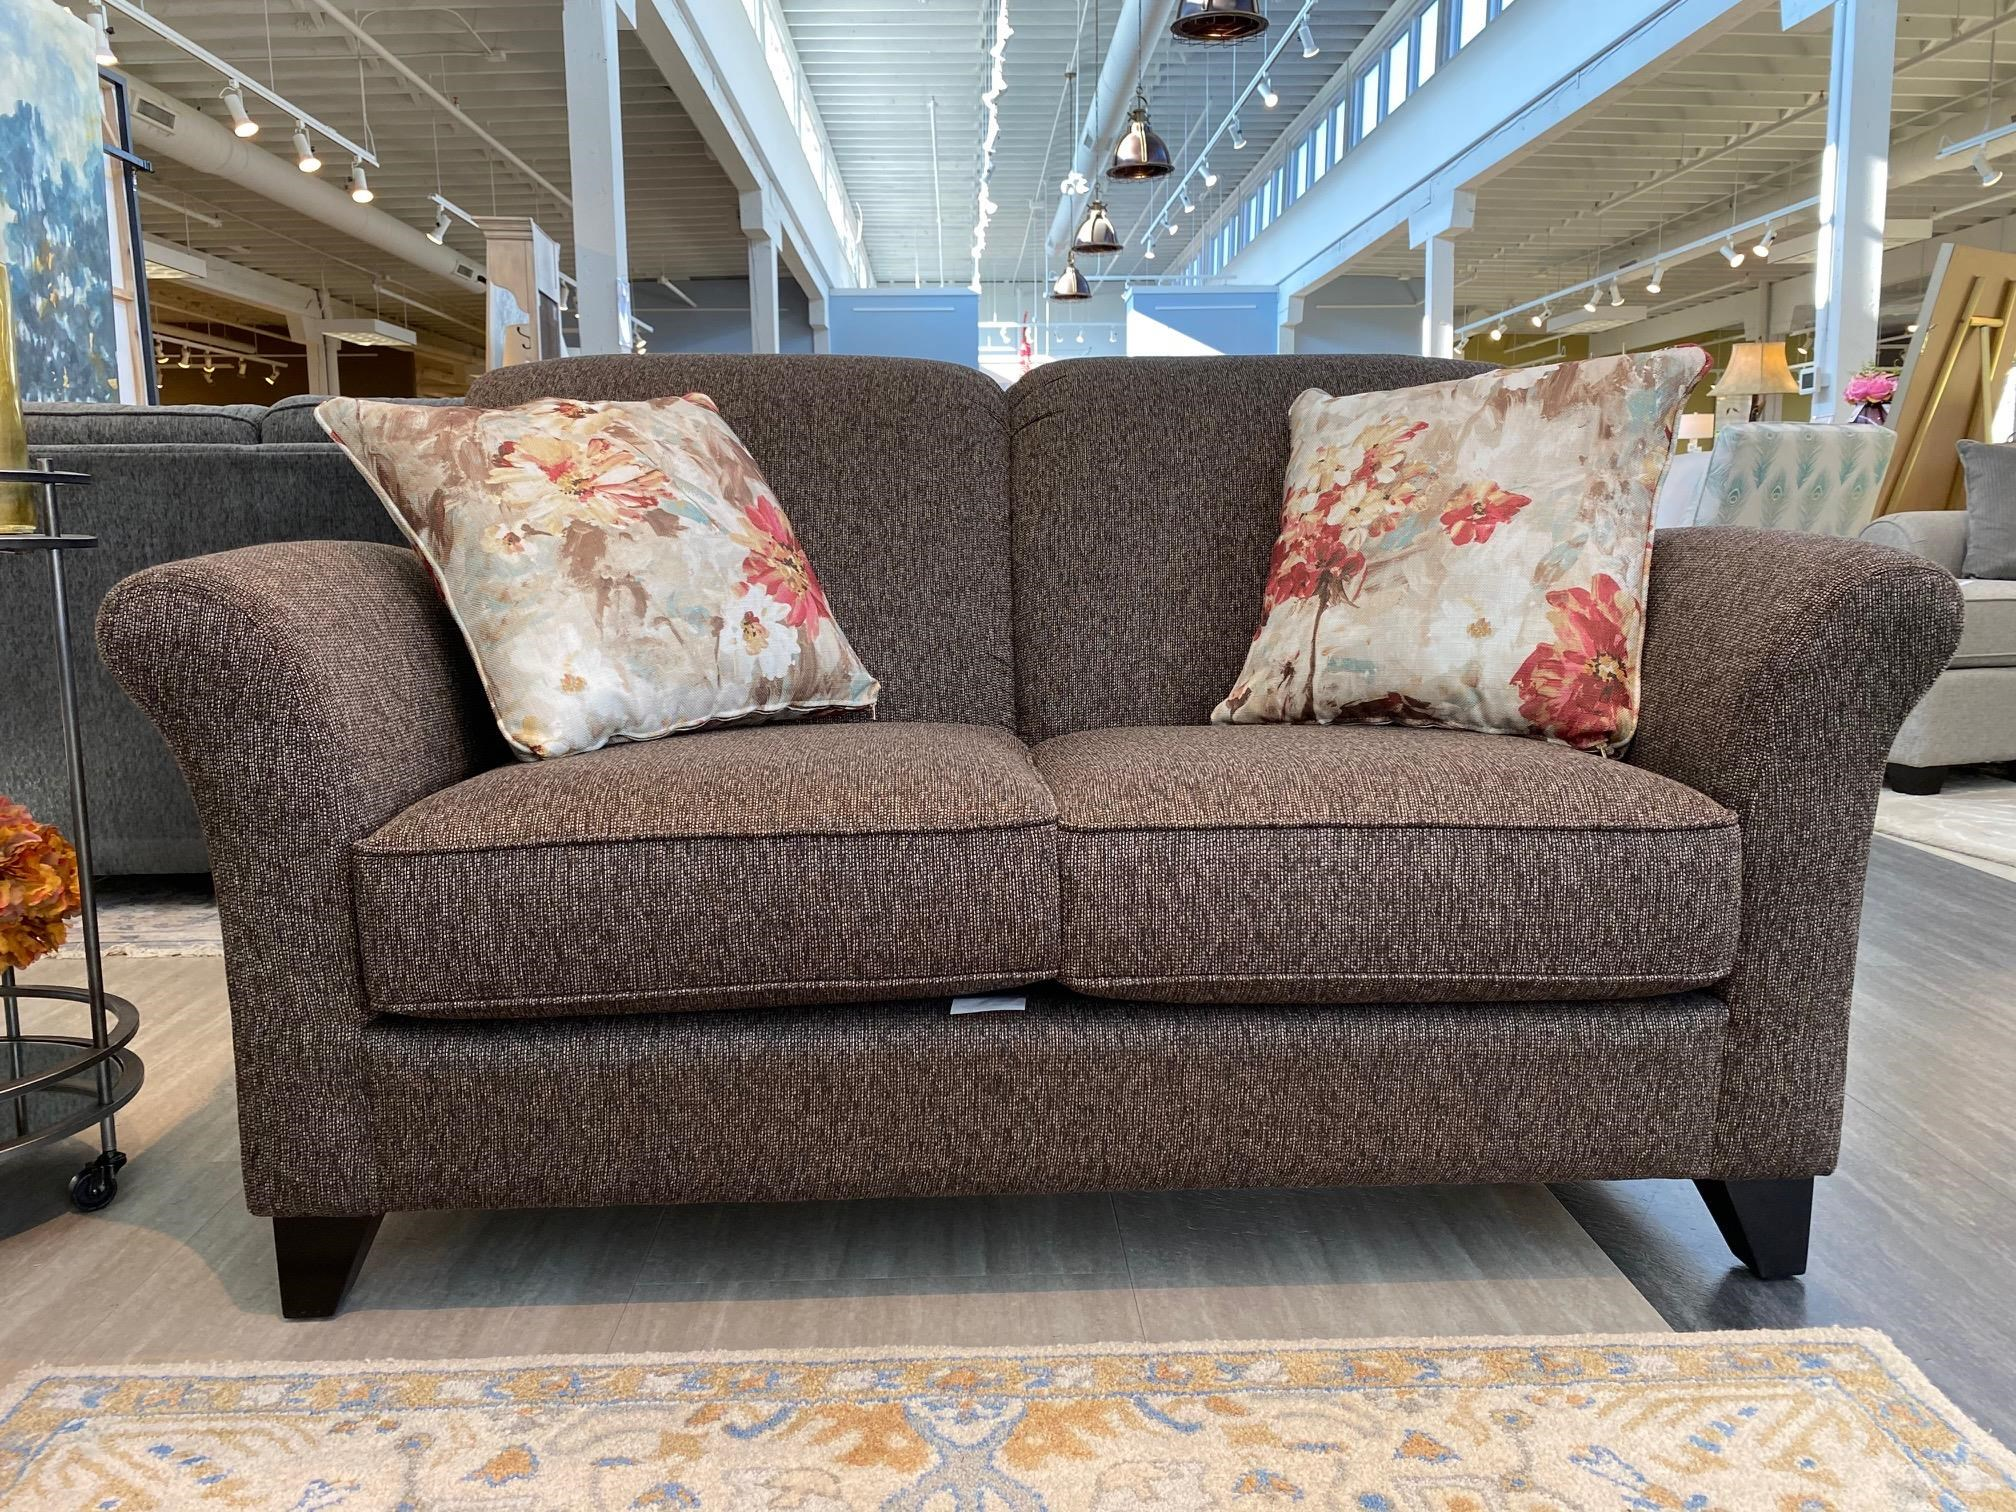 Beckett Love Seat by Taelor Designs at Bennett's Furniture and Mattresses